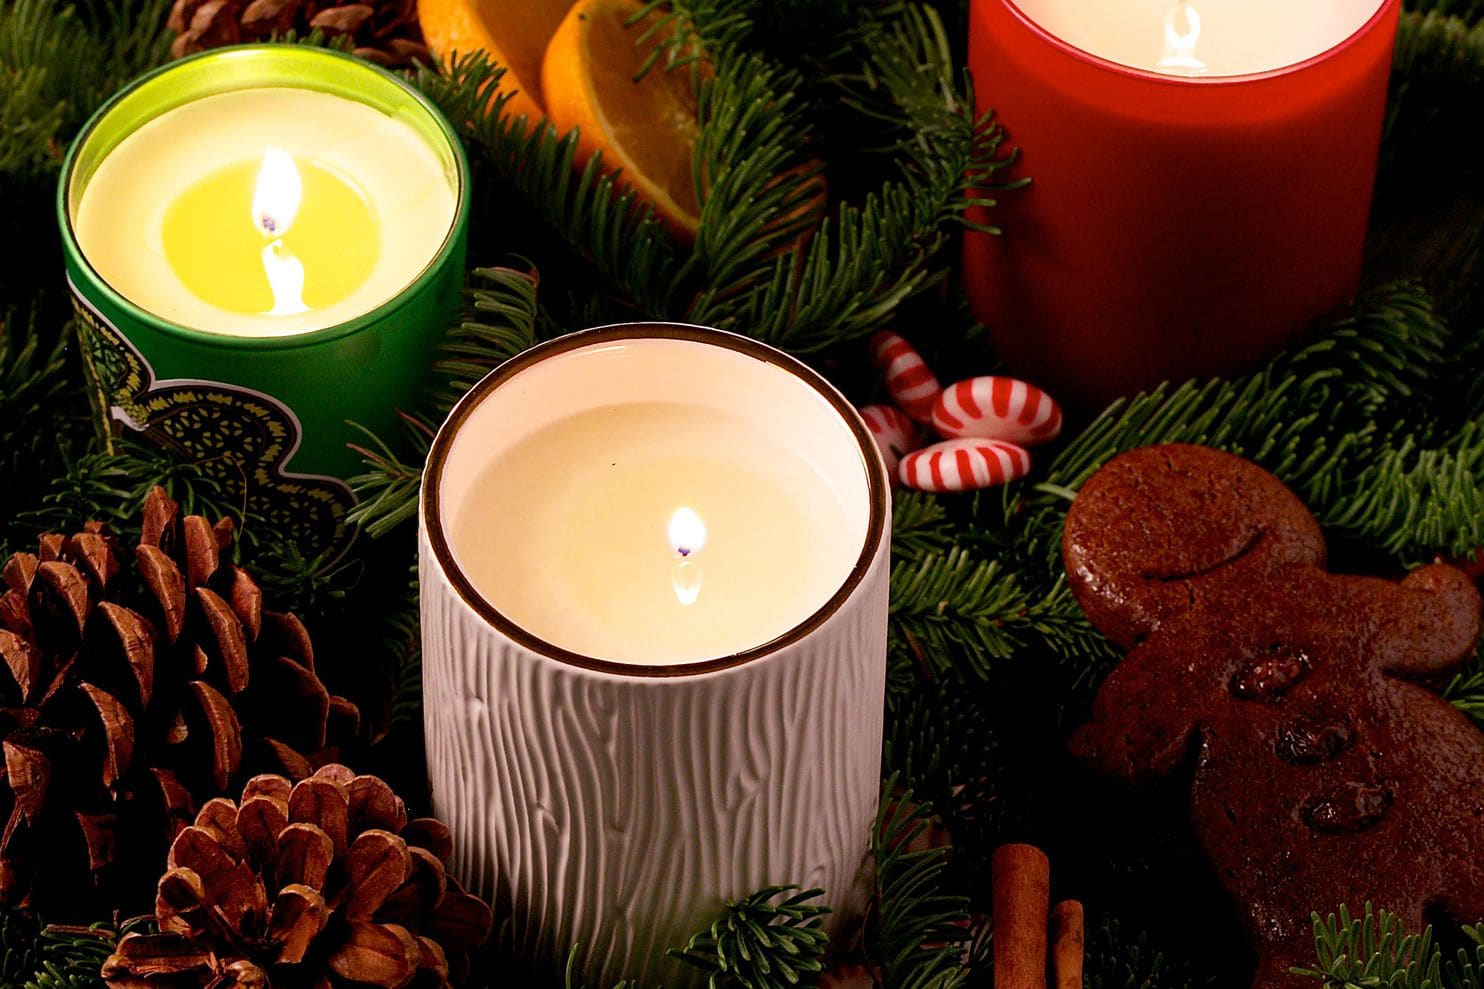 Gingerbread, fir or burning wood: Can a scented candle capture the essence of Christmas? | The Washington Post